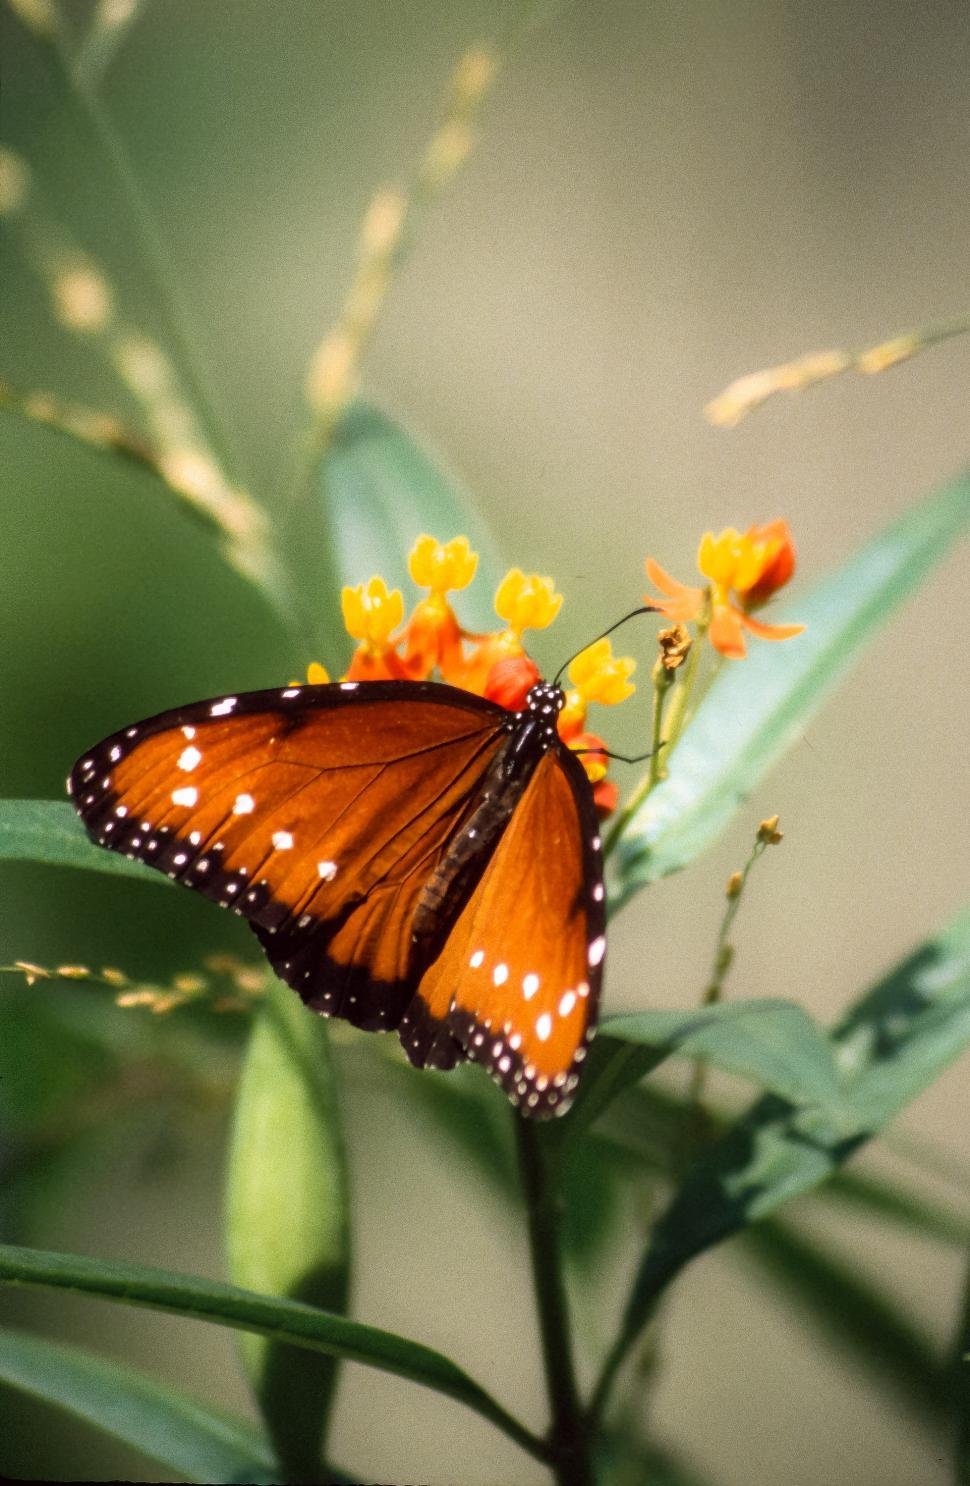 Download Free Stock Photo of Queen butterfly